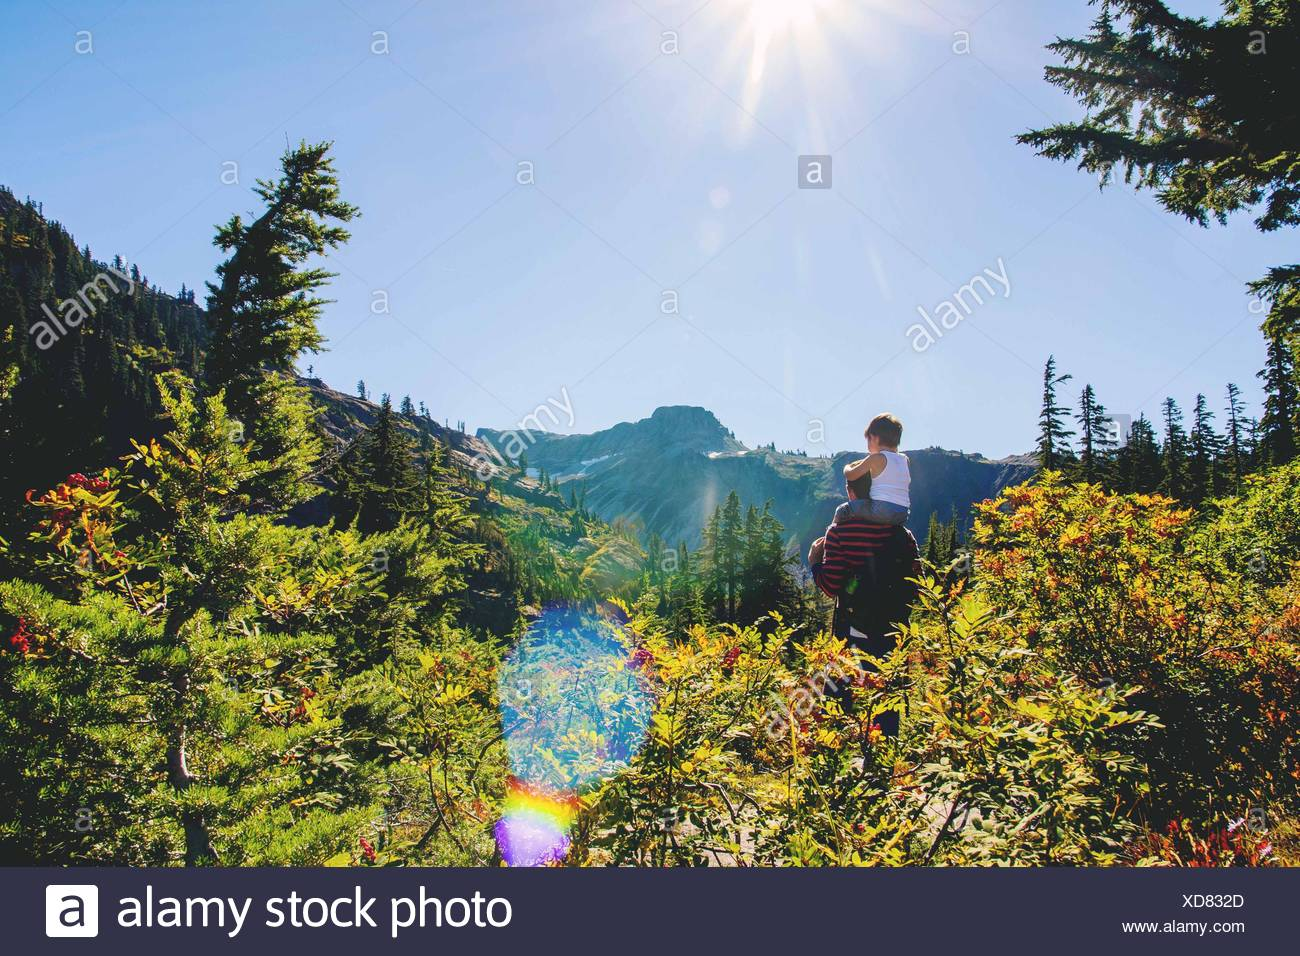 Young boy (2-3) sitting on father's shoulders looking at mountain - Stock Image